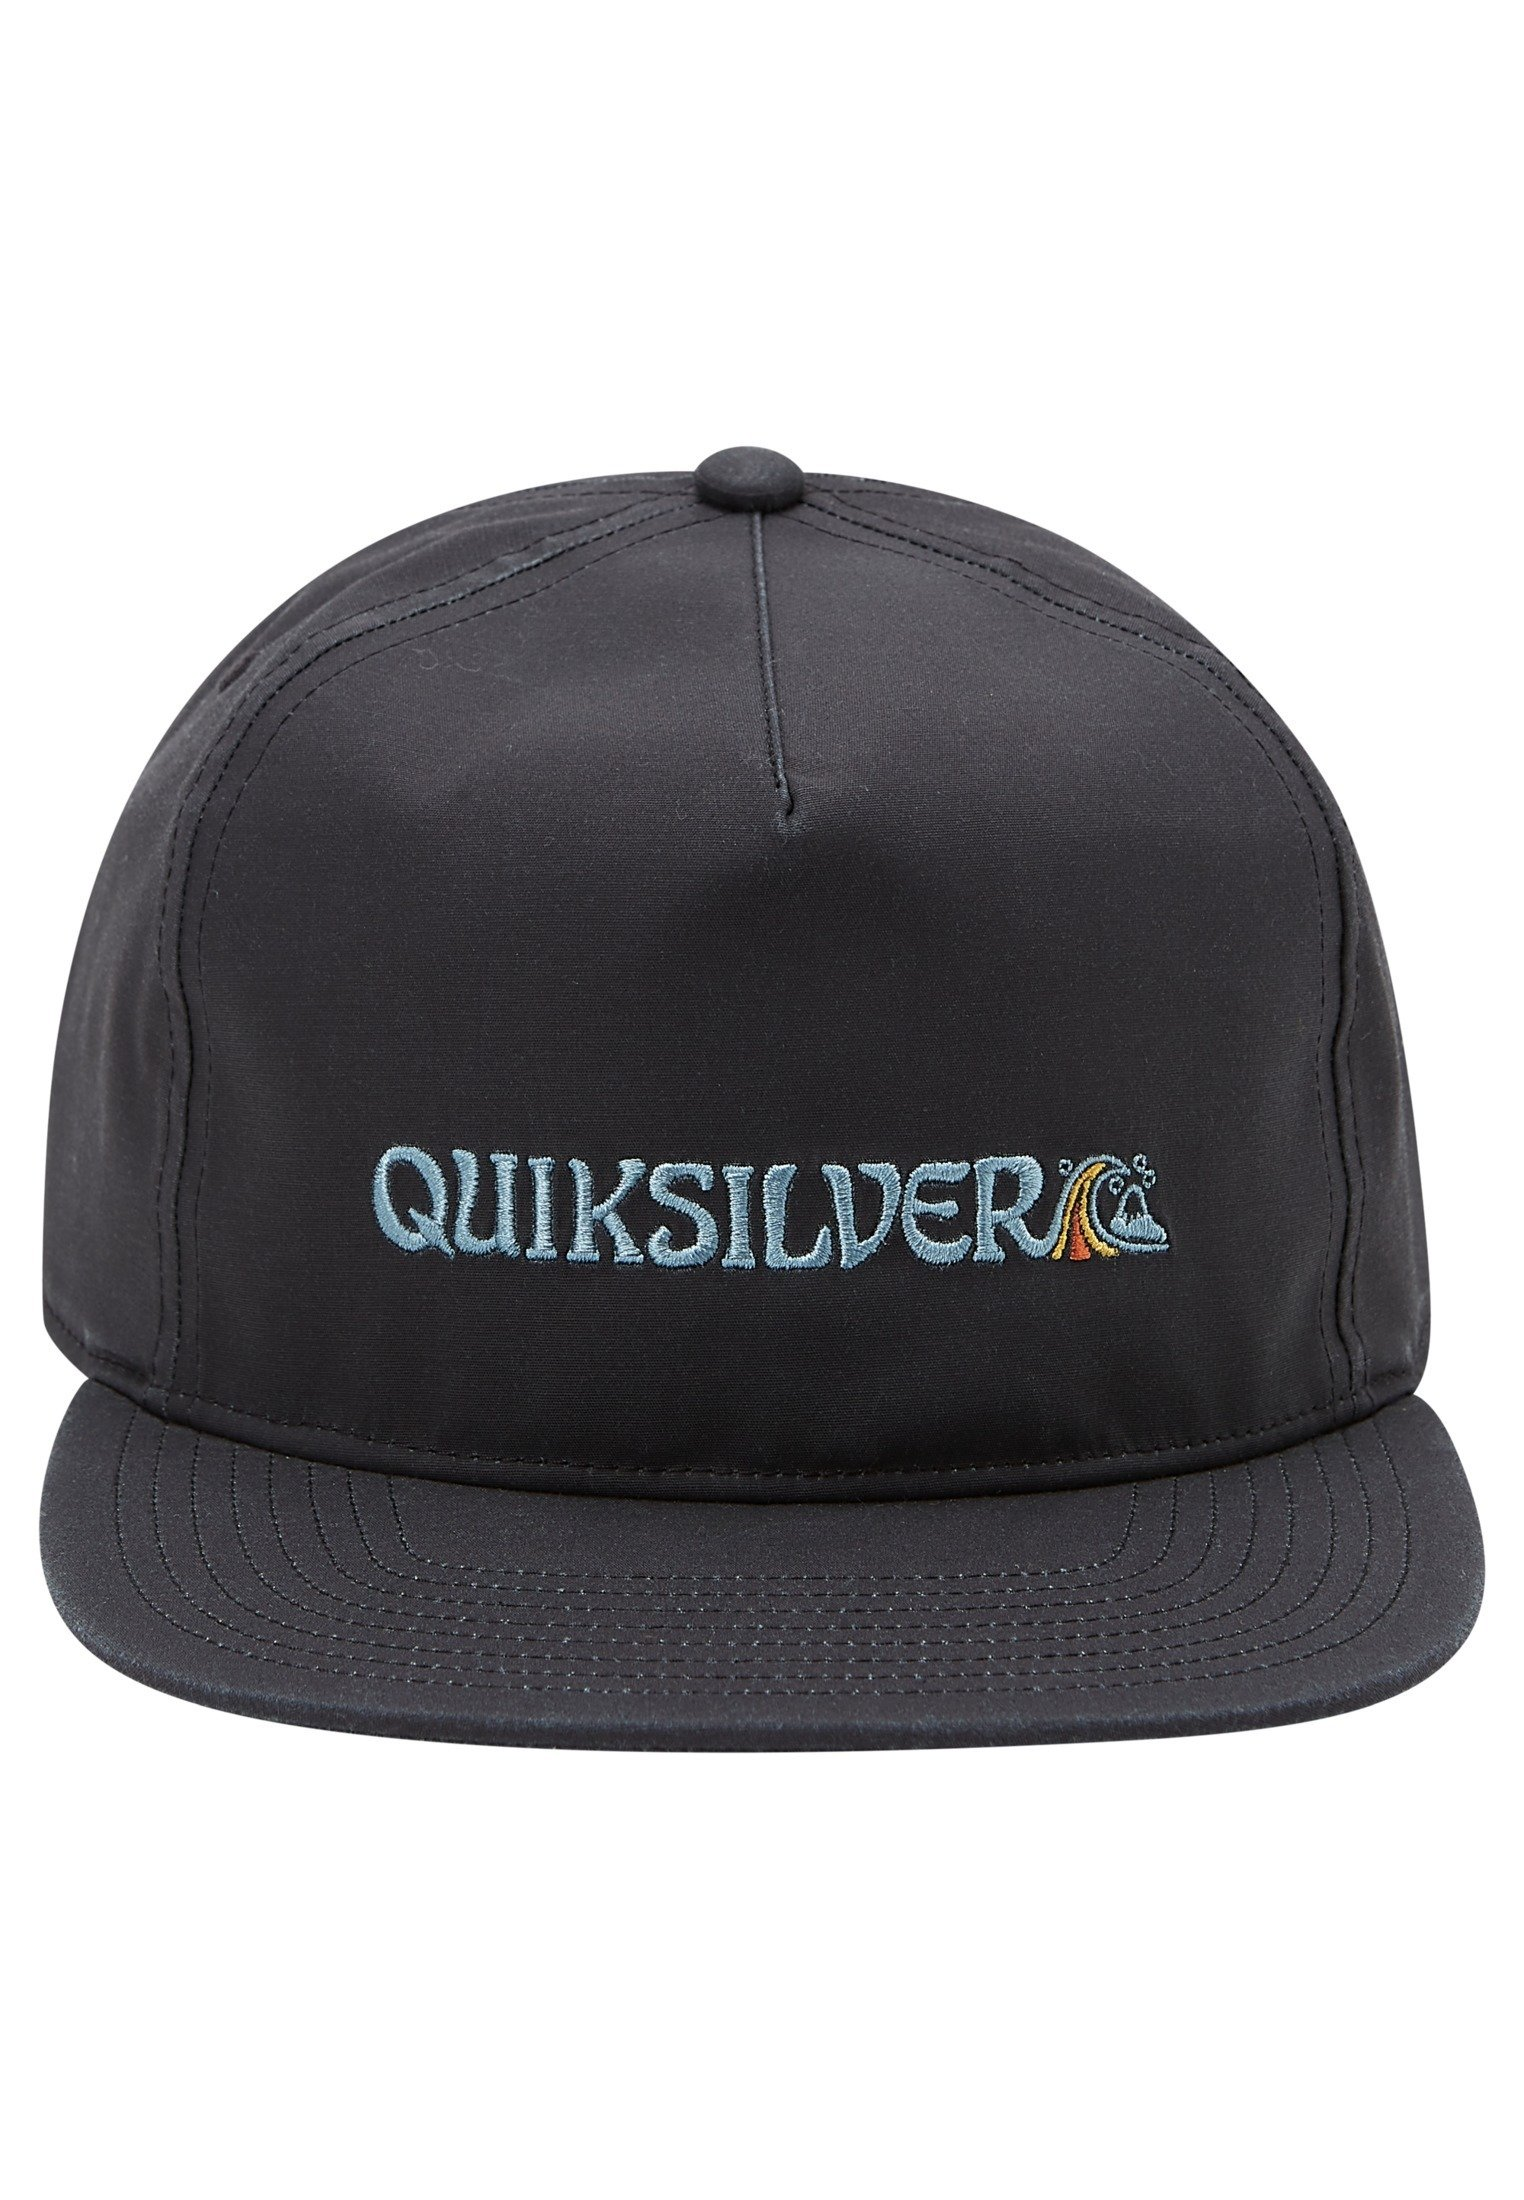 Homme QUIKSILVER™ SUSTAIN TO REMAIN - Casquette